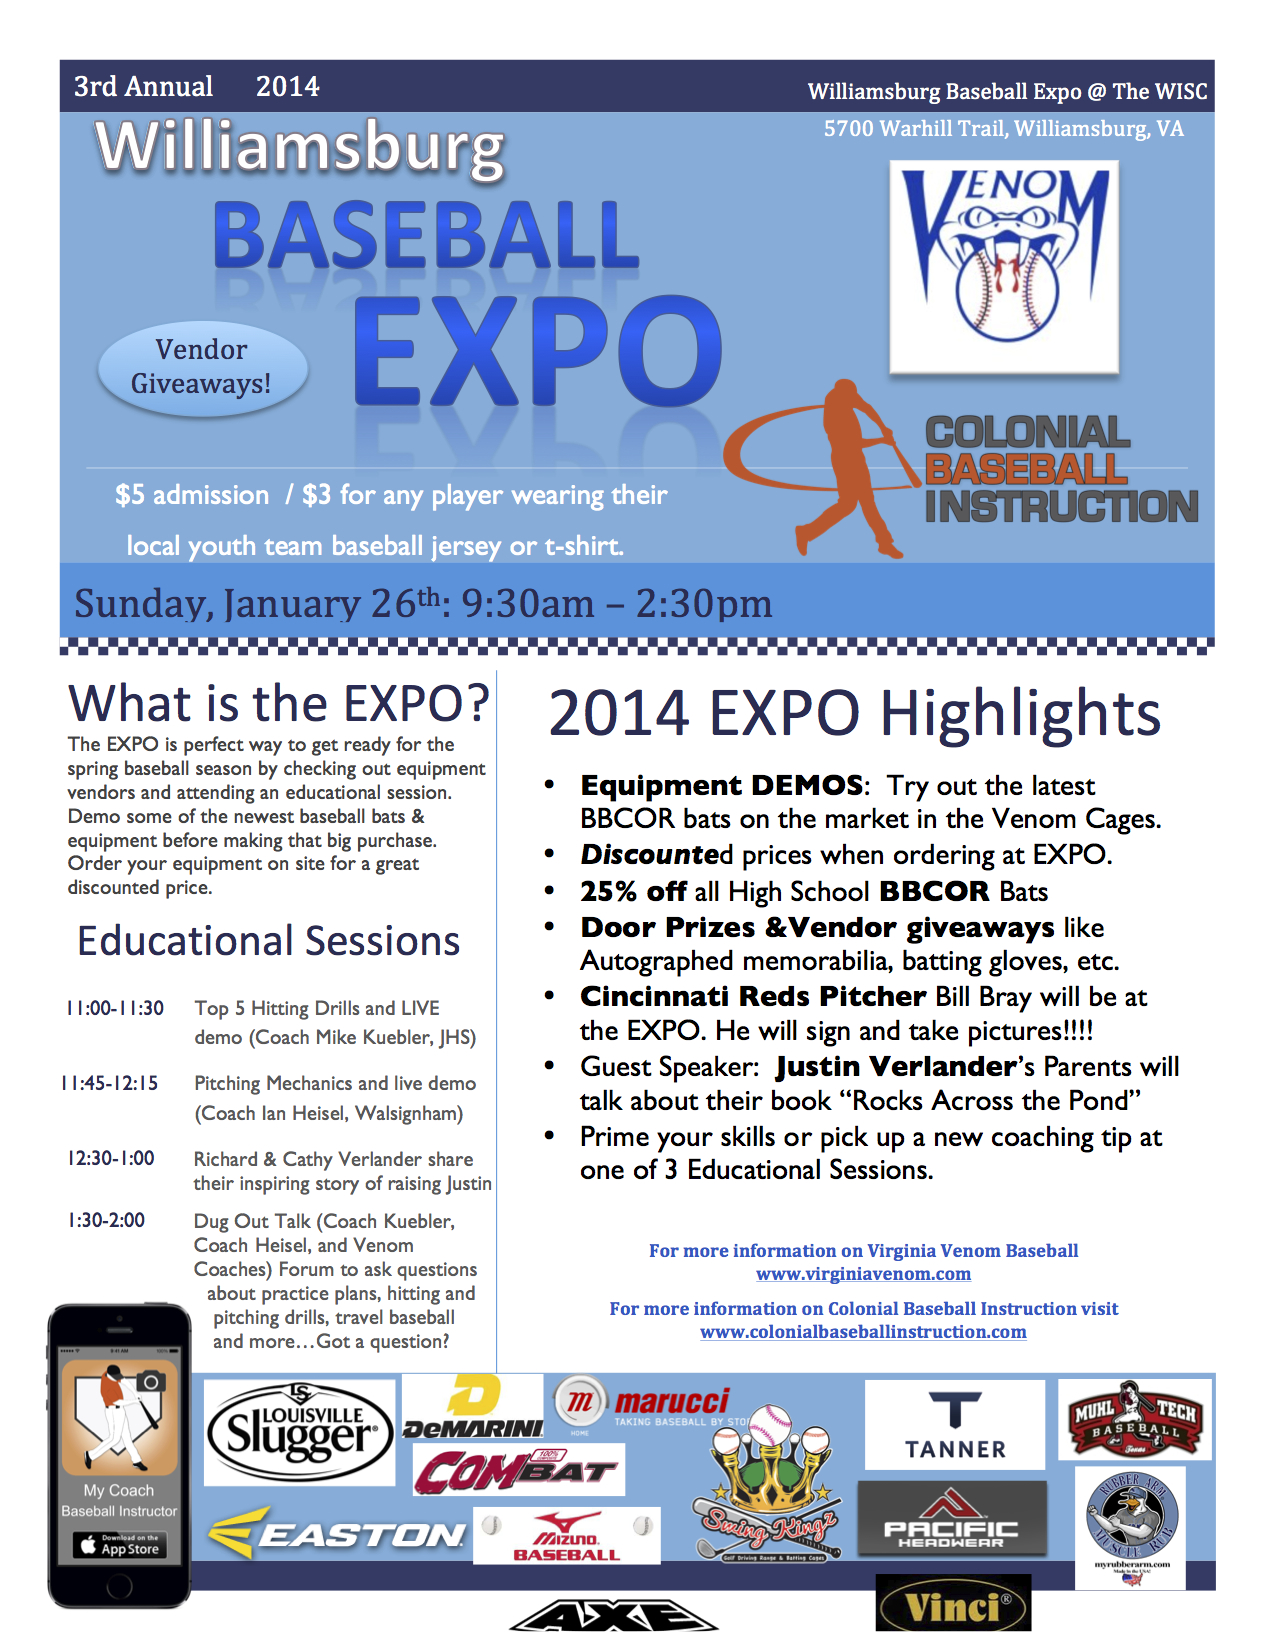 Williamsburg Baseball EXPO Flyer 2014-3